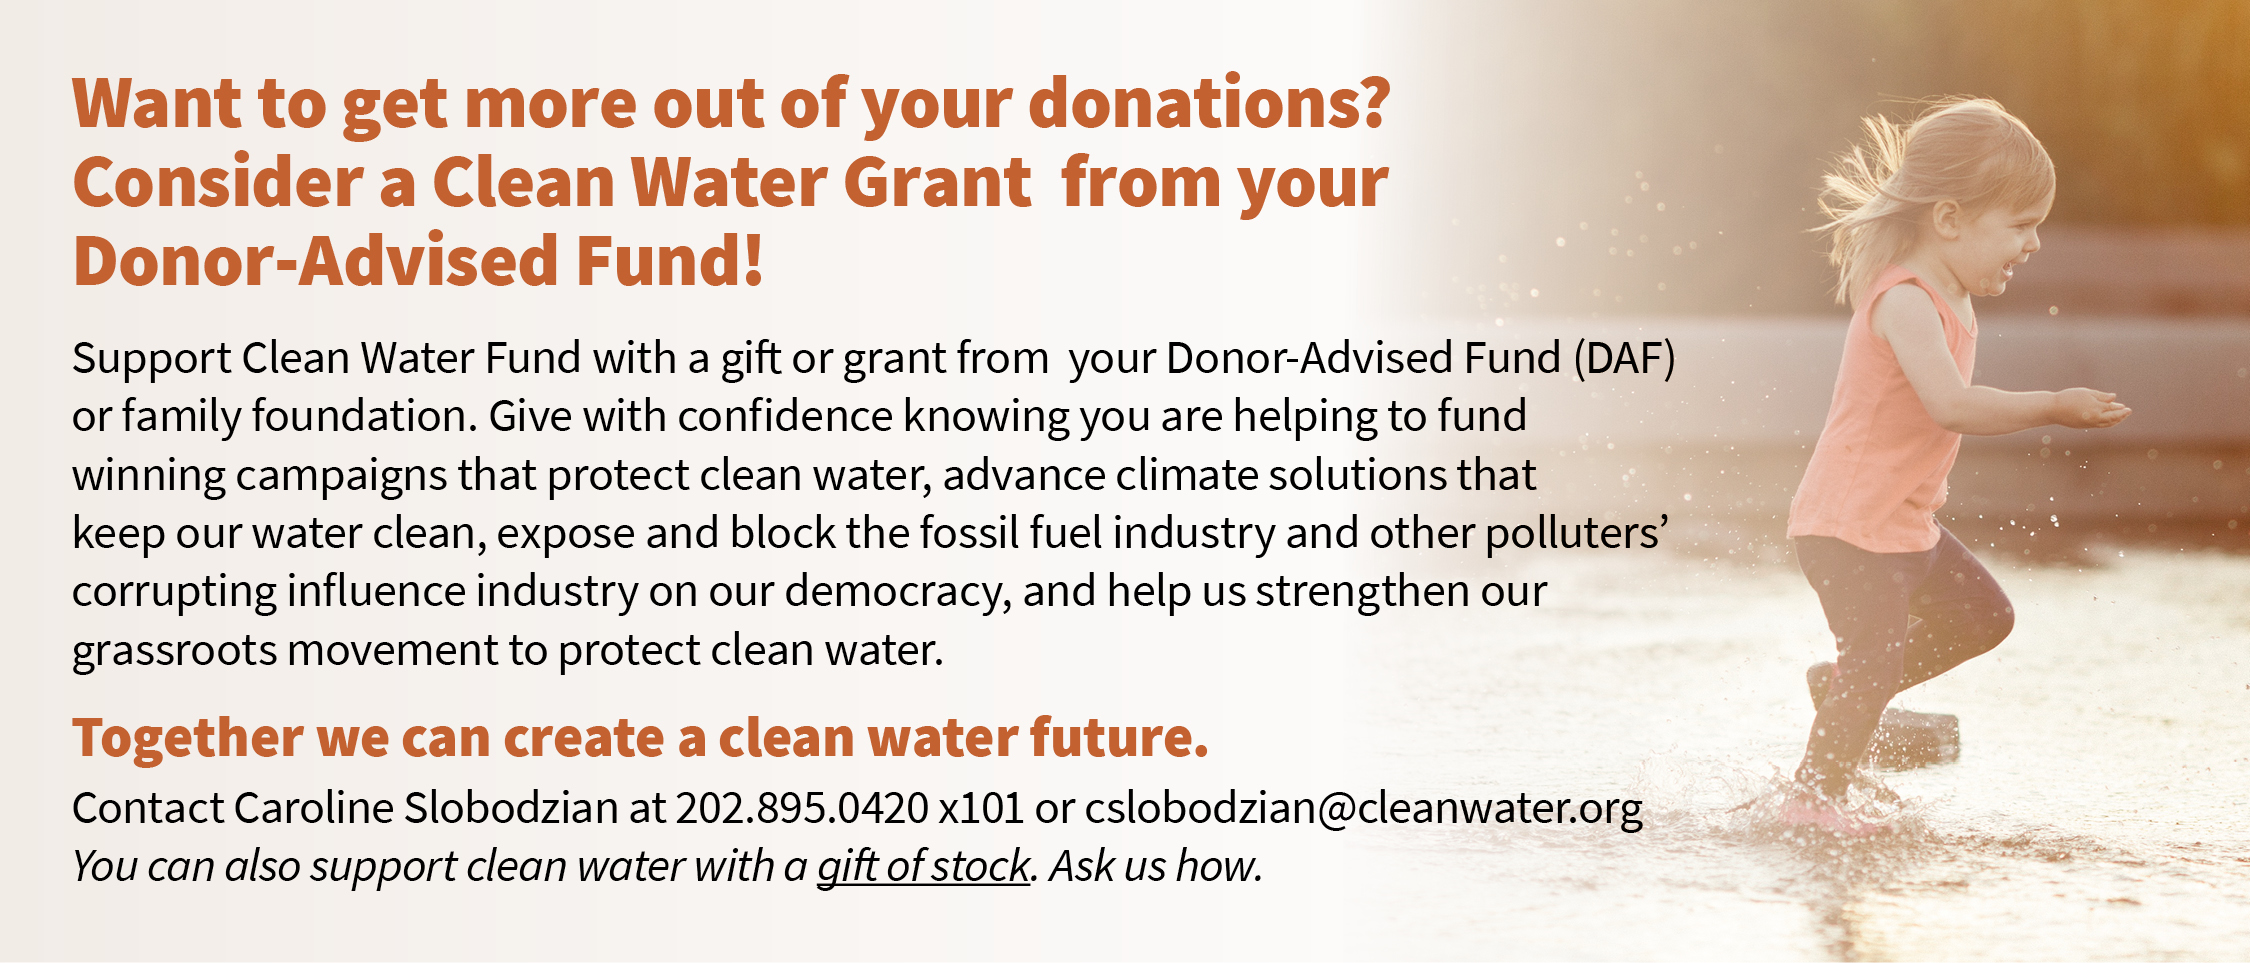 Consider a donation from your Donor-Advised Fund